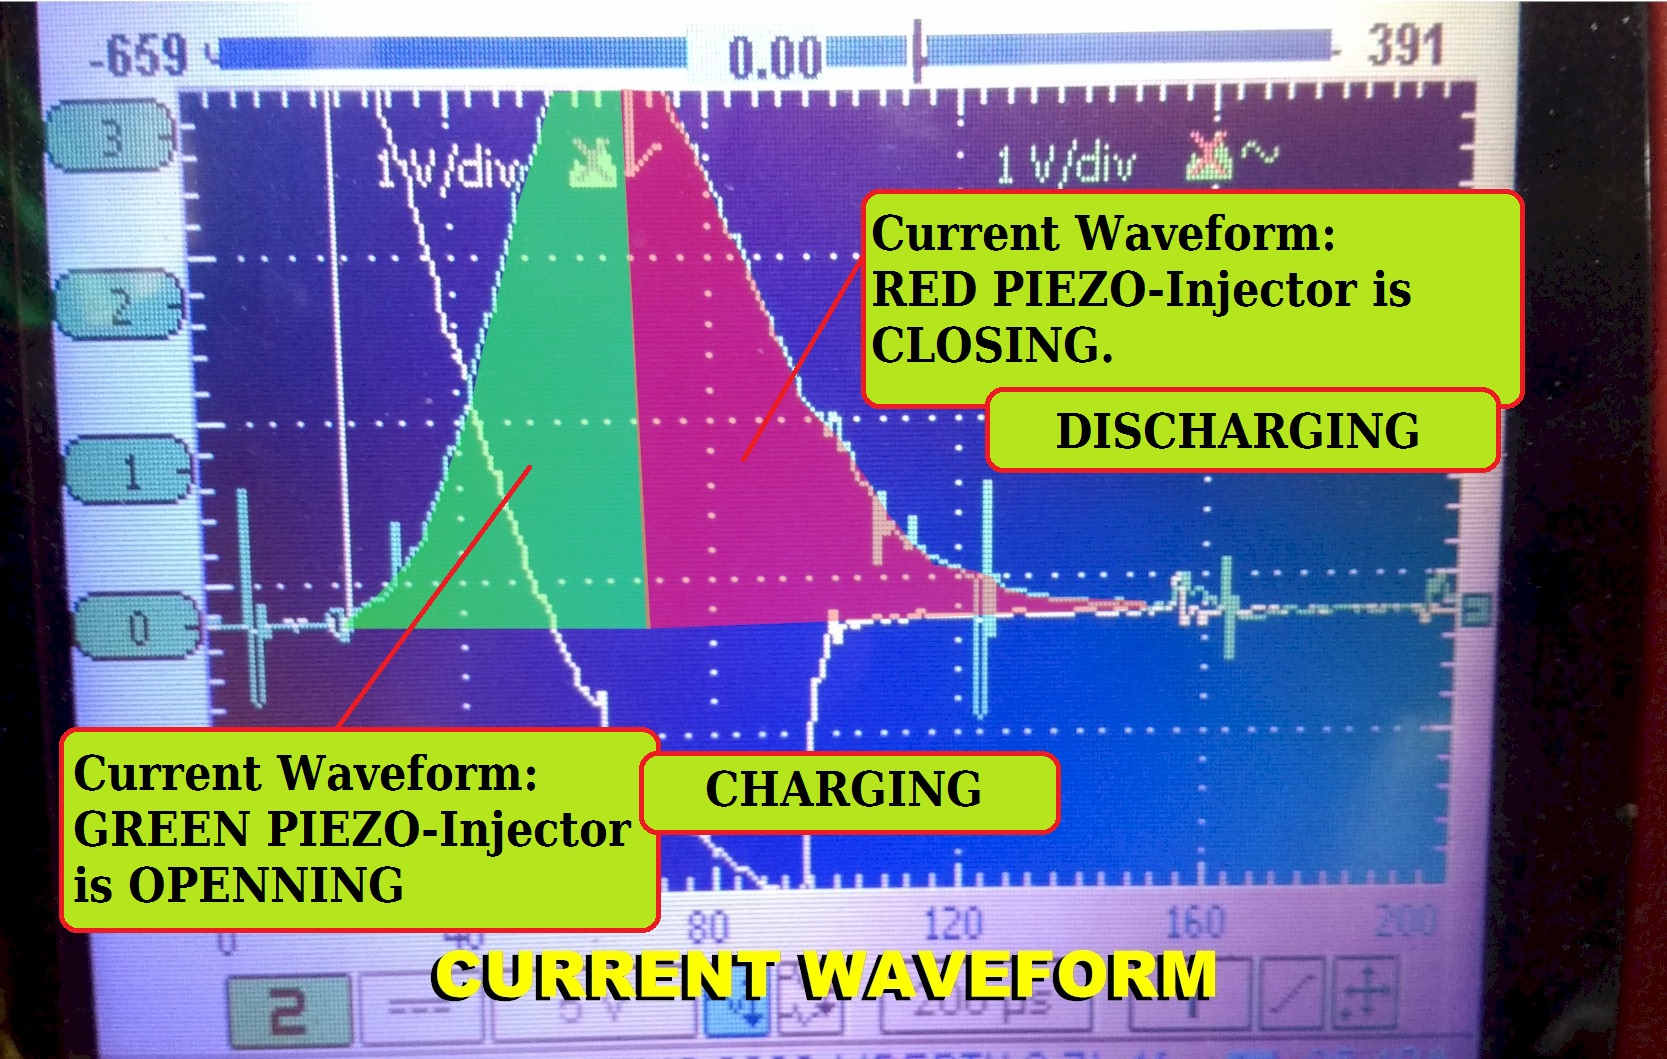 CRDI injector current waveform